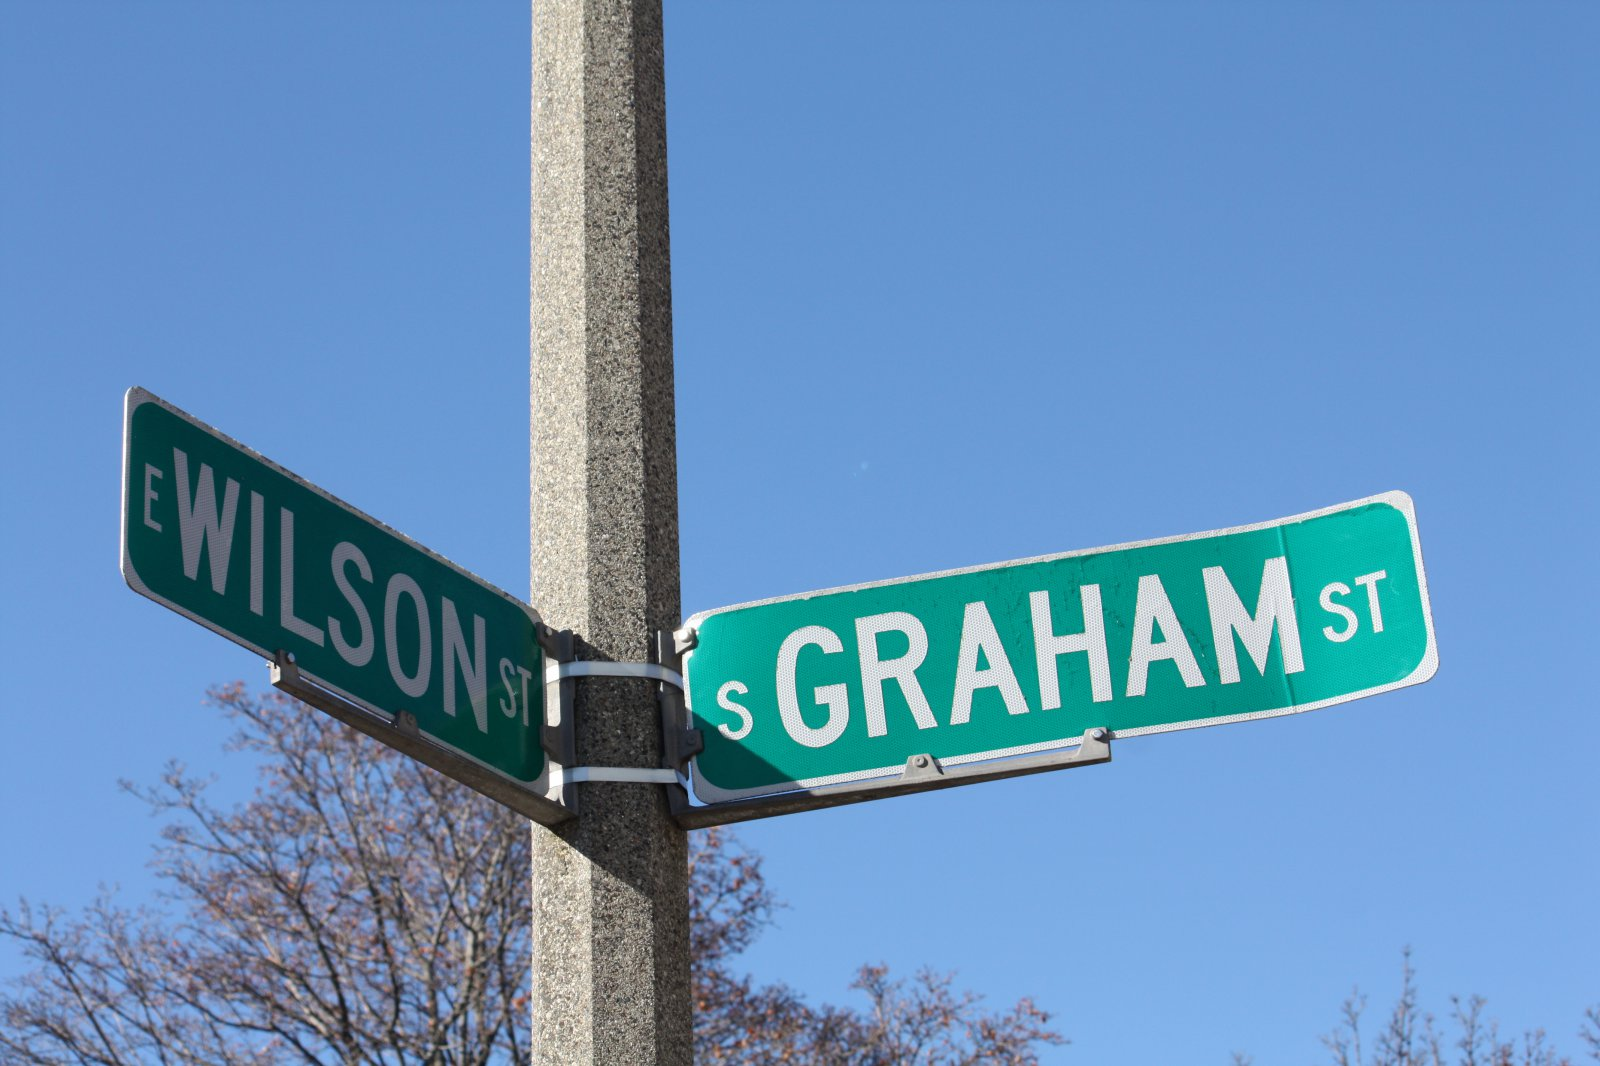 E. Wilson and S. Graham streets